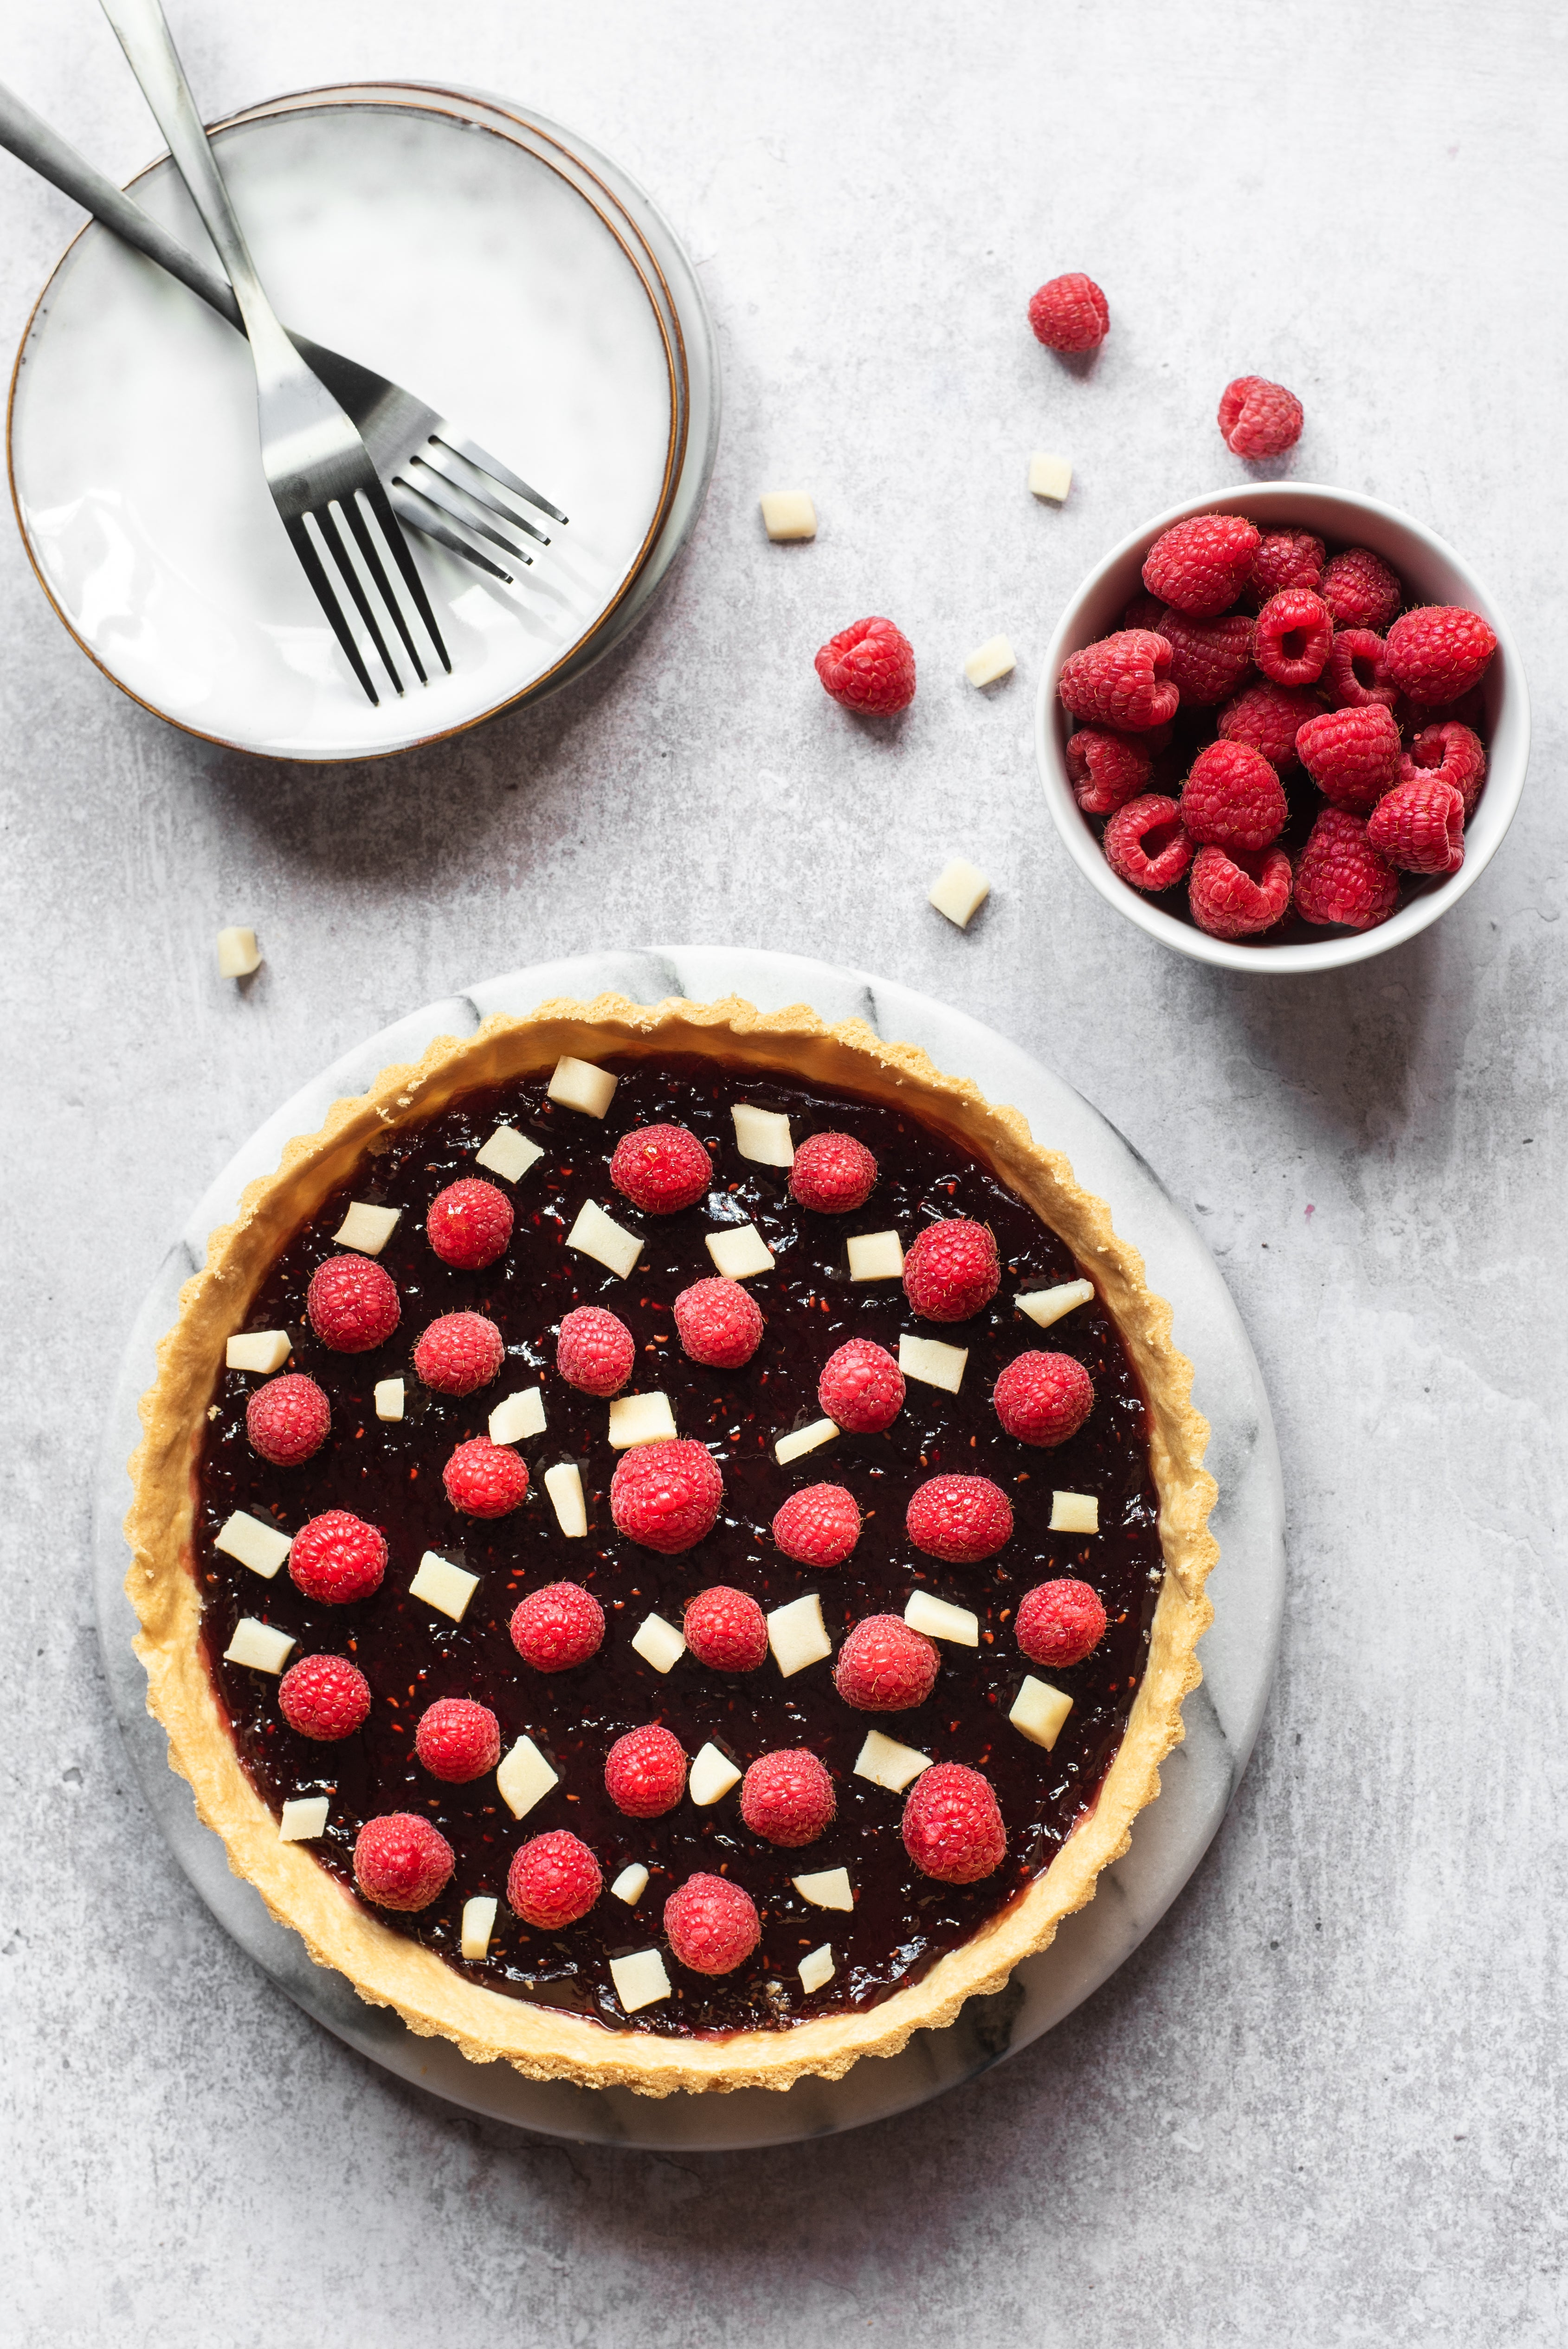 birds-eye view of a sweet tart topped with raspberries